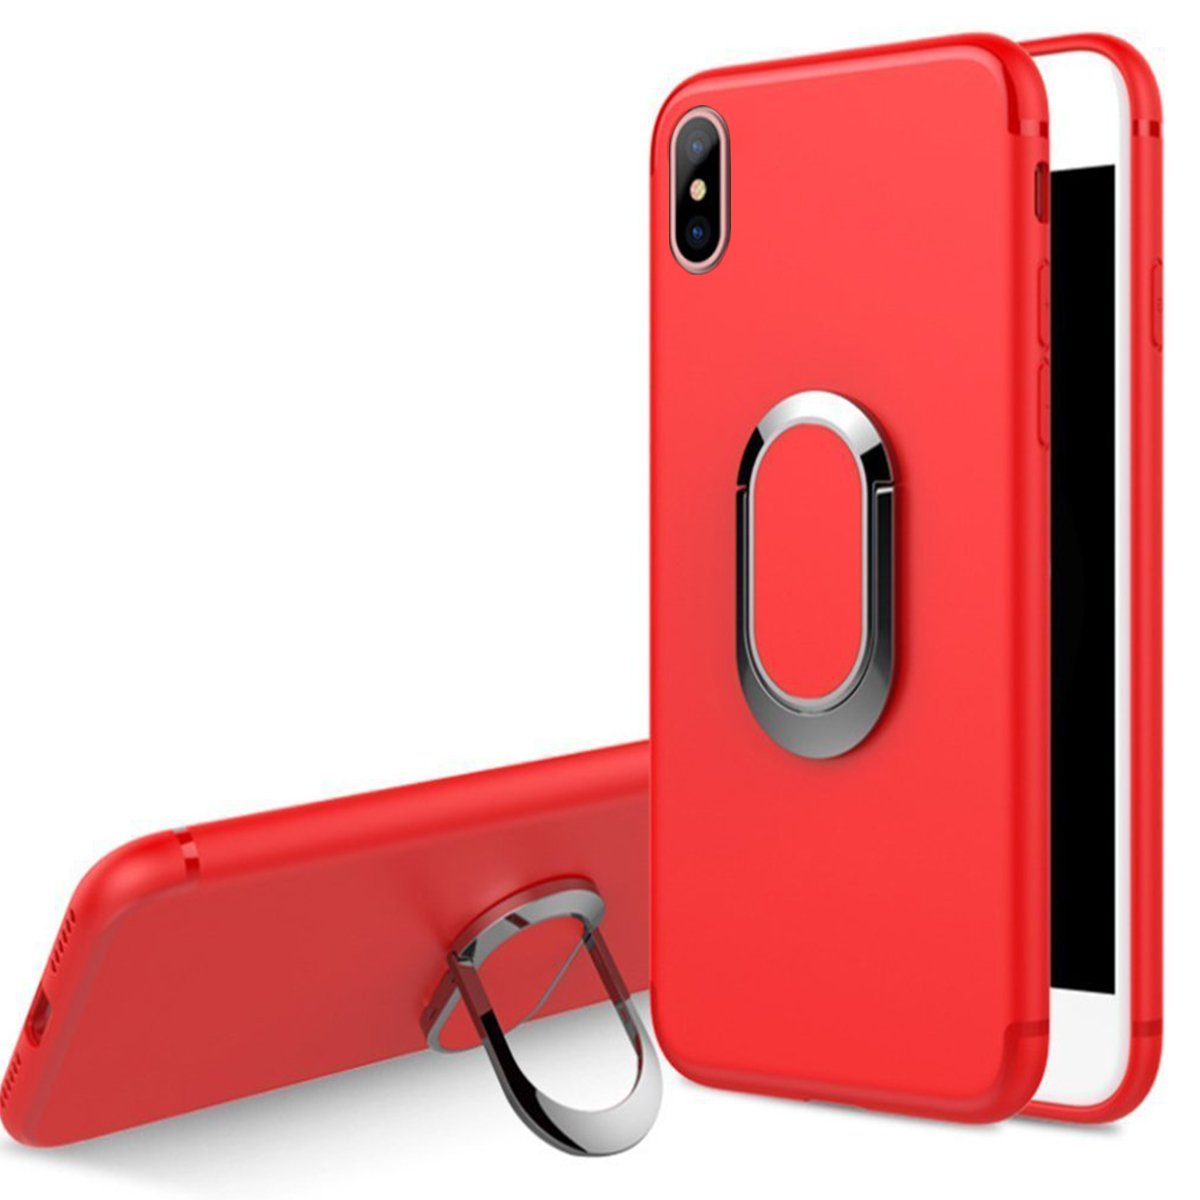 iPhone Xs Case, iPhone X Case, WATACHE Built-in Magnetic Iron 360 Degree Rotating Ring Holder Kickstand Thin Slim Fit Premium TPU Shockproof Protective Case Cover for Apple iPhone Xs/X(Black) APG0032